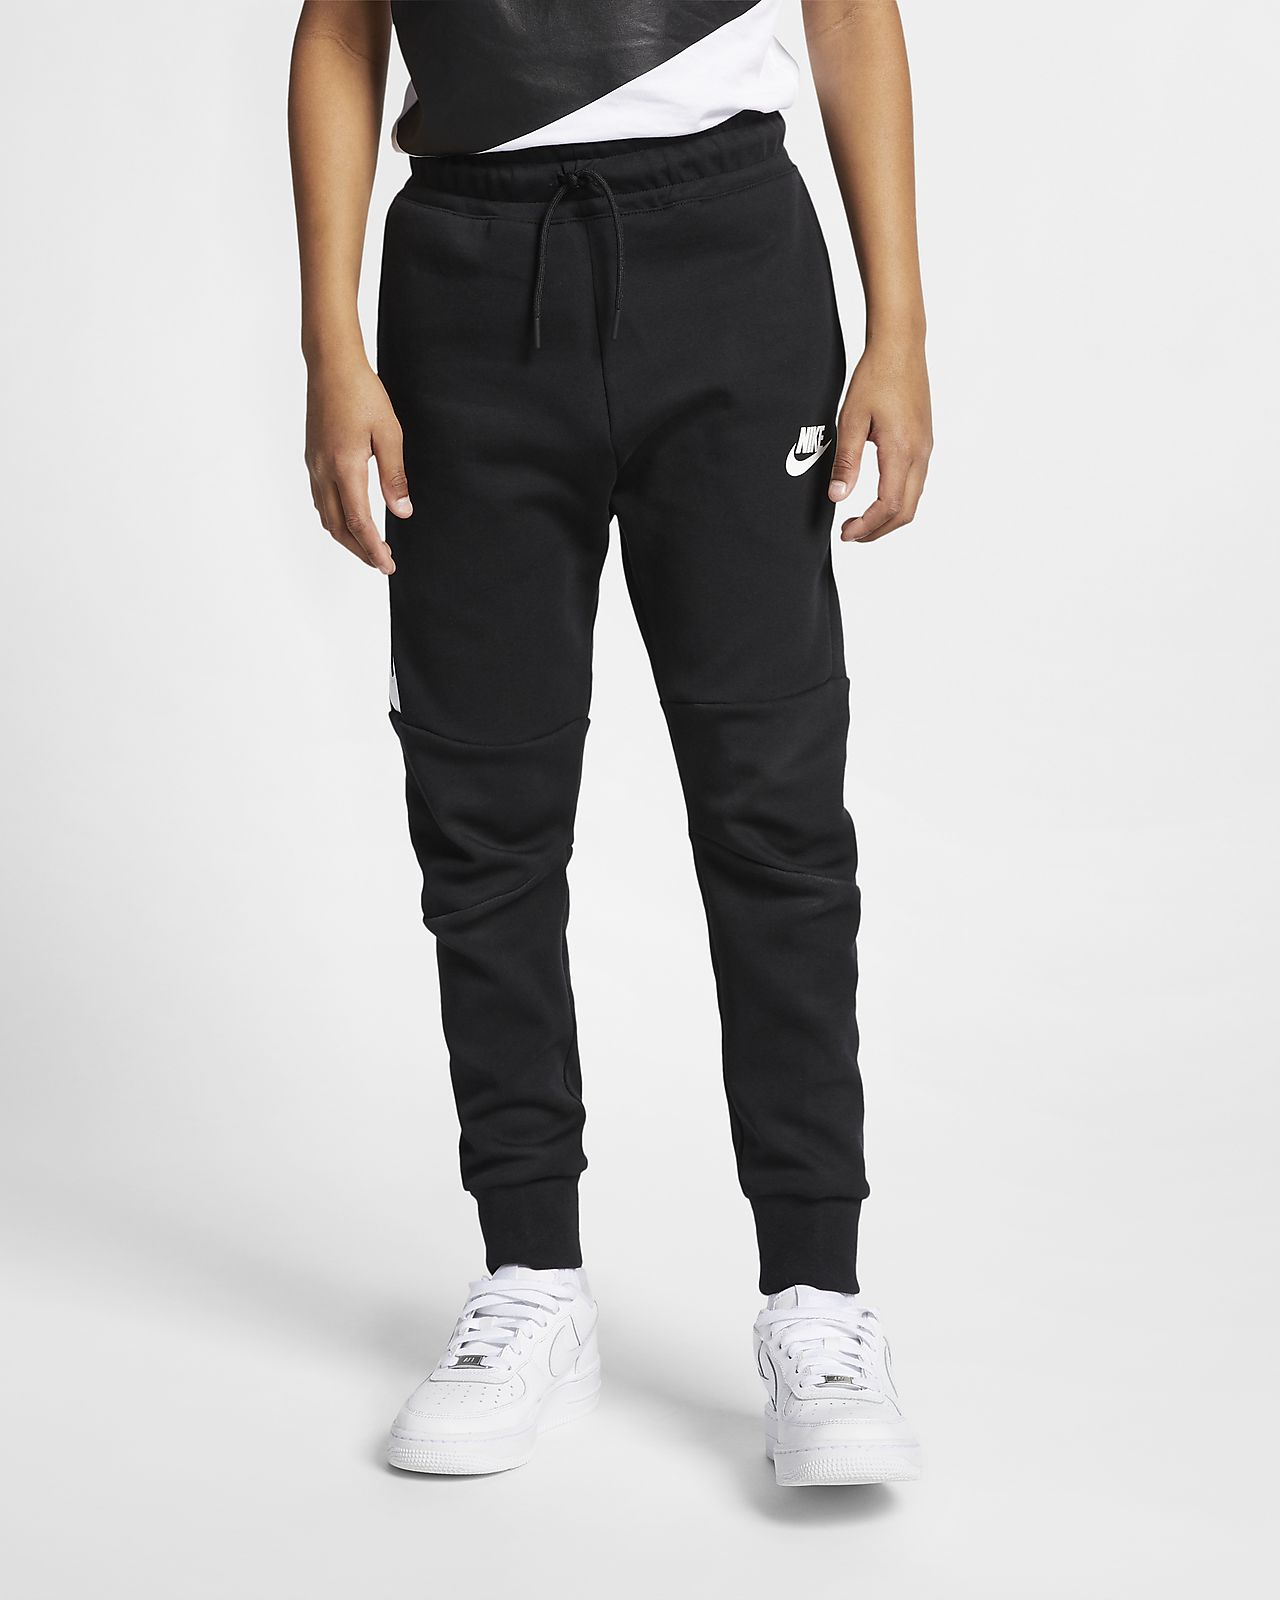 569d808e75 Pantaloni in Tech Fleece Nike Sportswear - Ragazzi. Nike.com IT